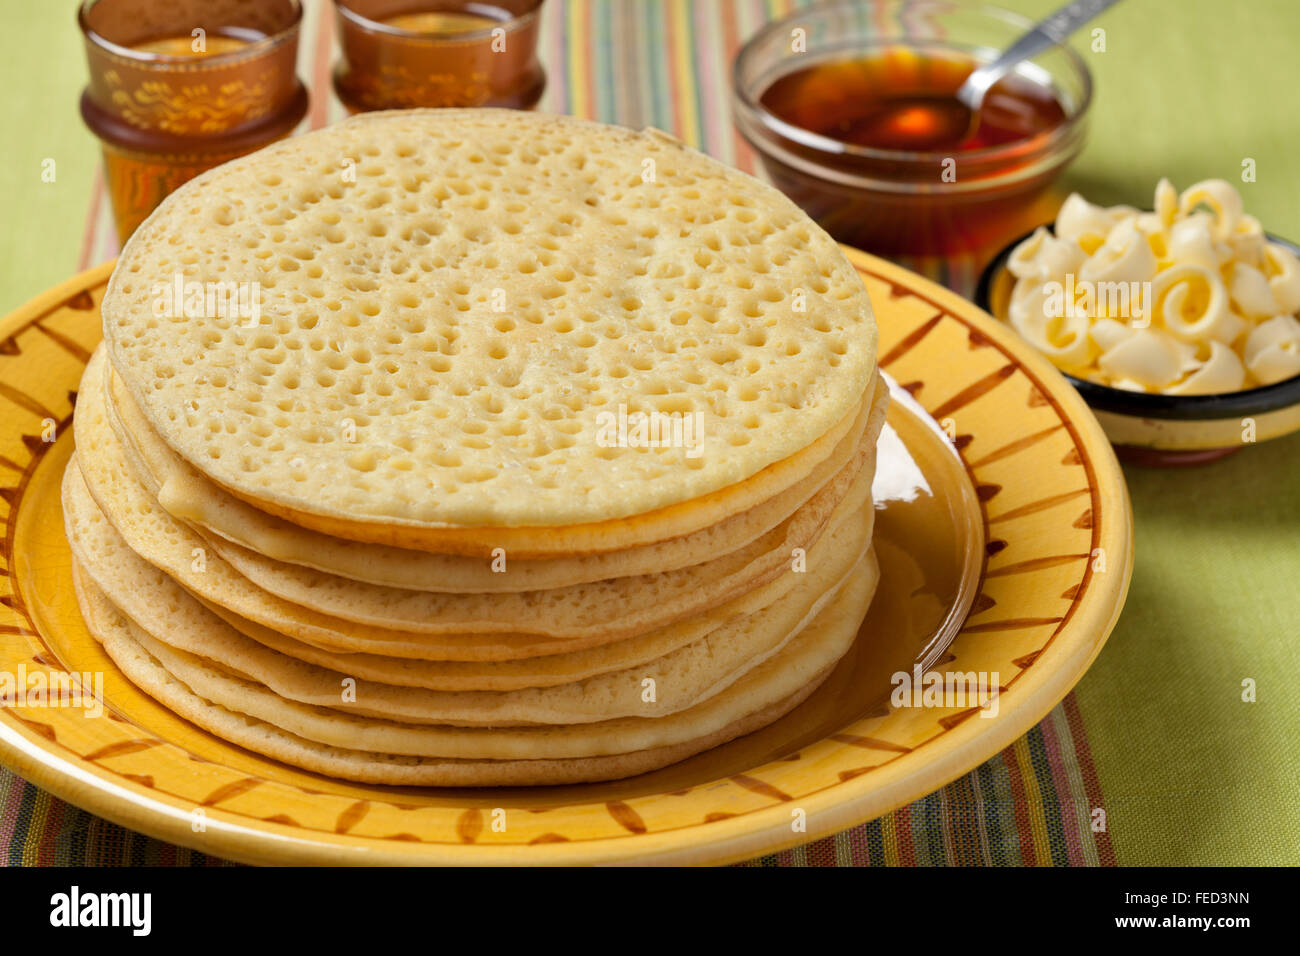 Heap of traditional Moroccan beghrir pancakes served with honey and butter - Stock Image